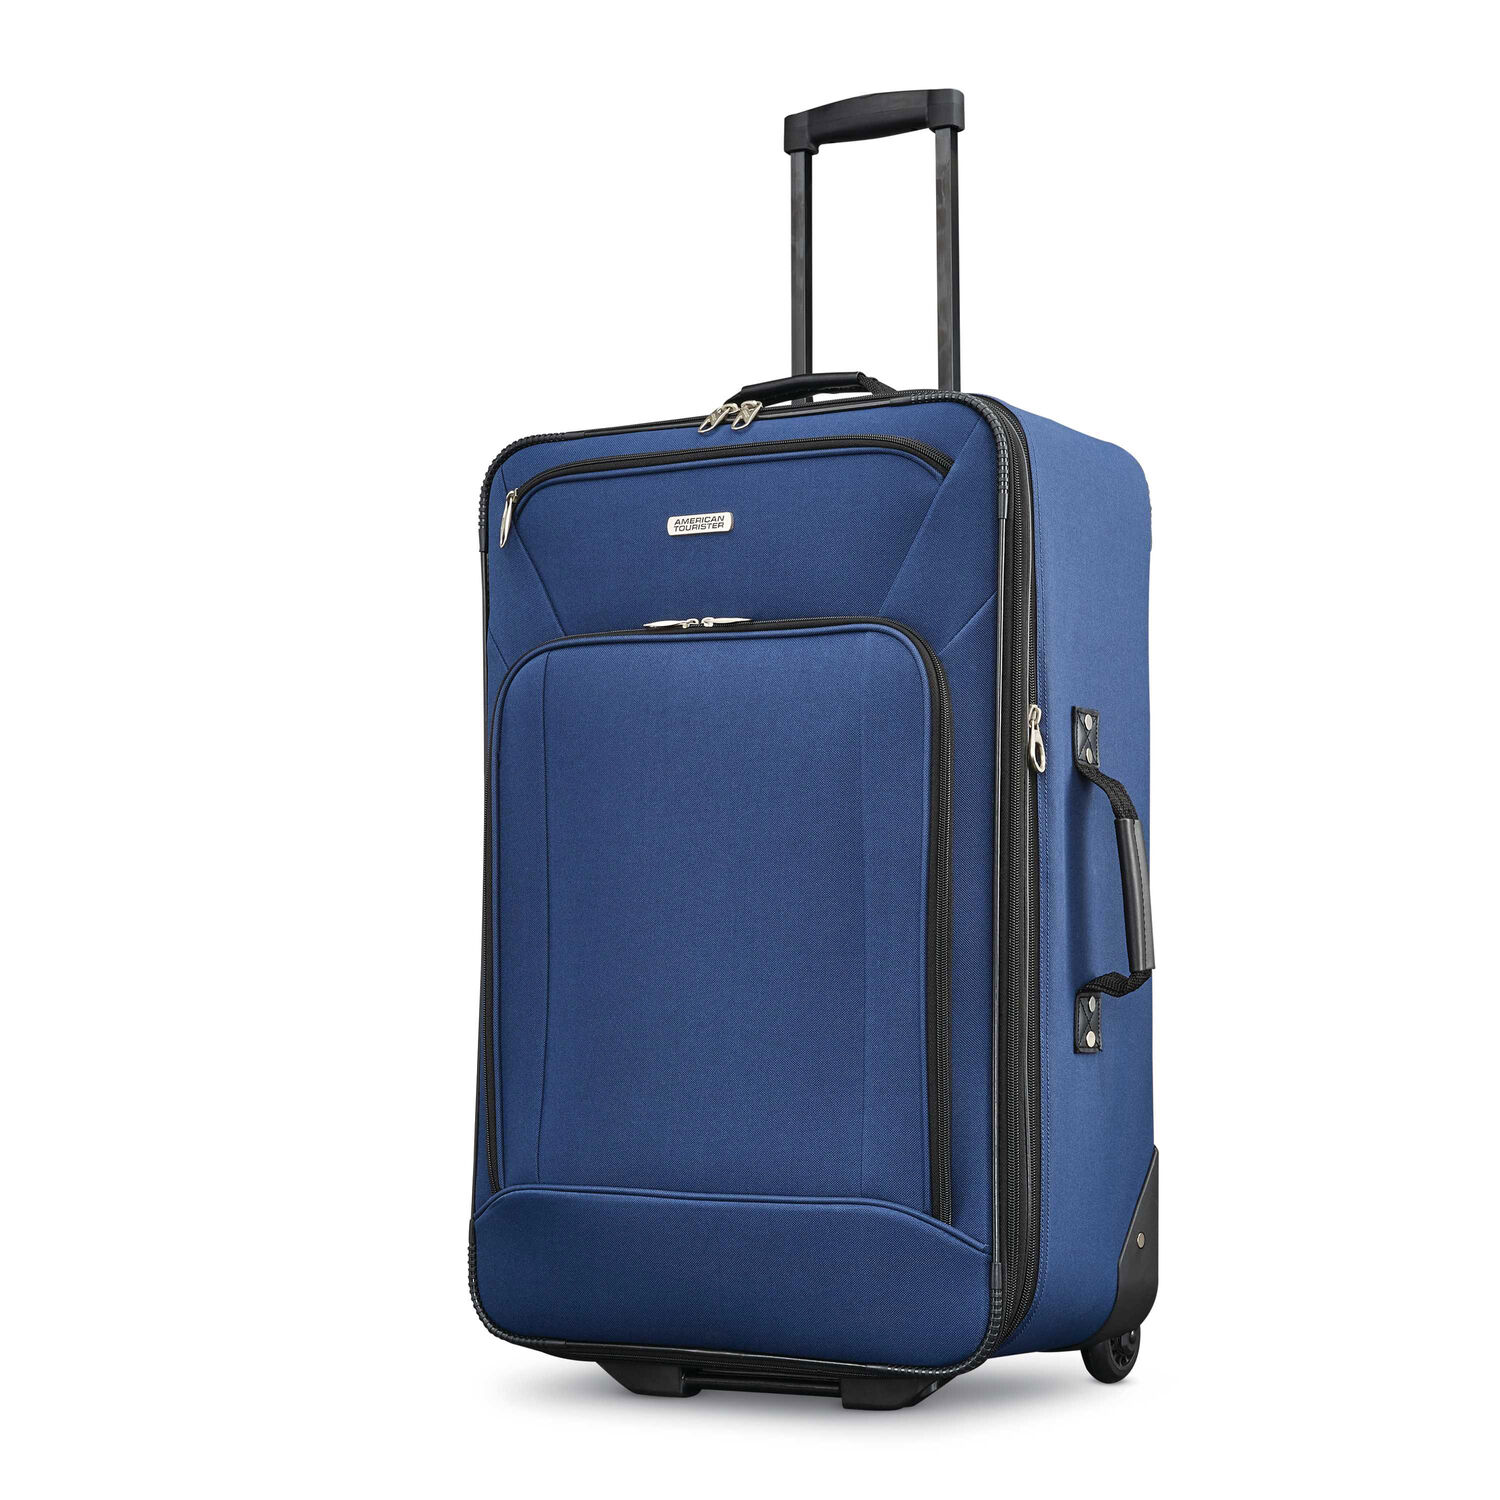 fd31ead6d American Tourister Fieldbrook XLT 4 Piece Set in the color Navy.